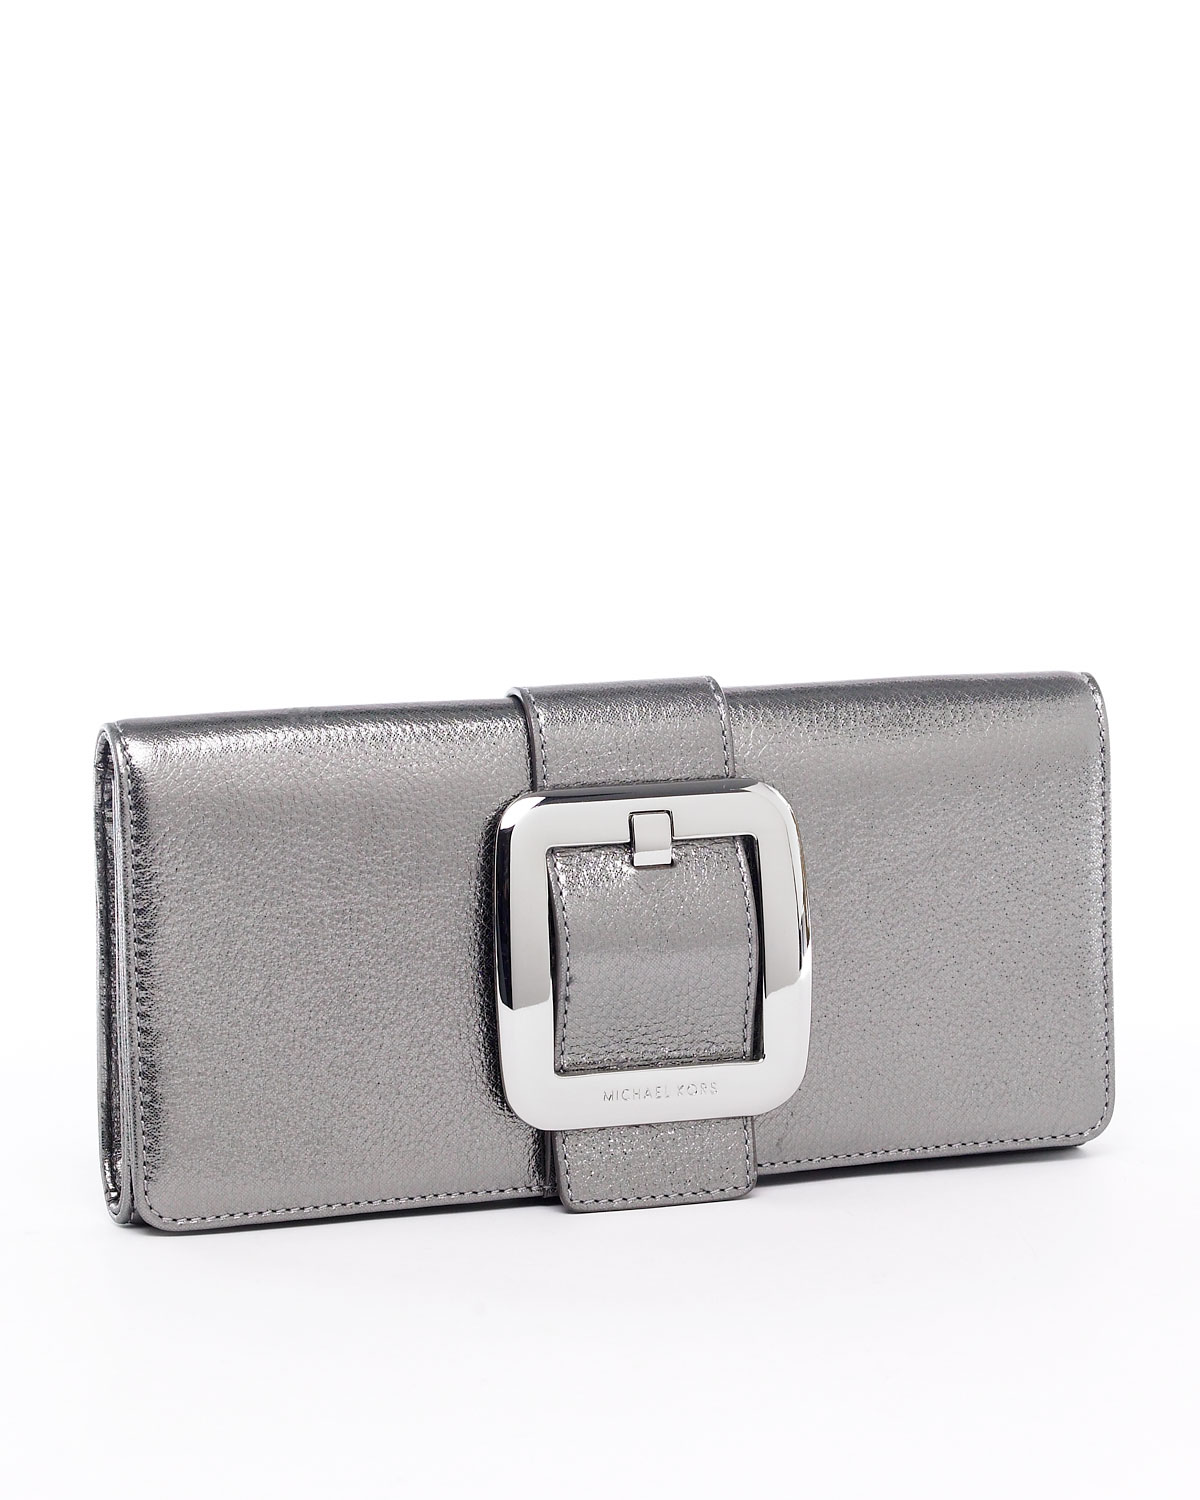 michael by michael kors sutton clutch nickel in silver. Black Bedroom Furniture Sets. Home Design Ideas